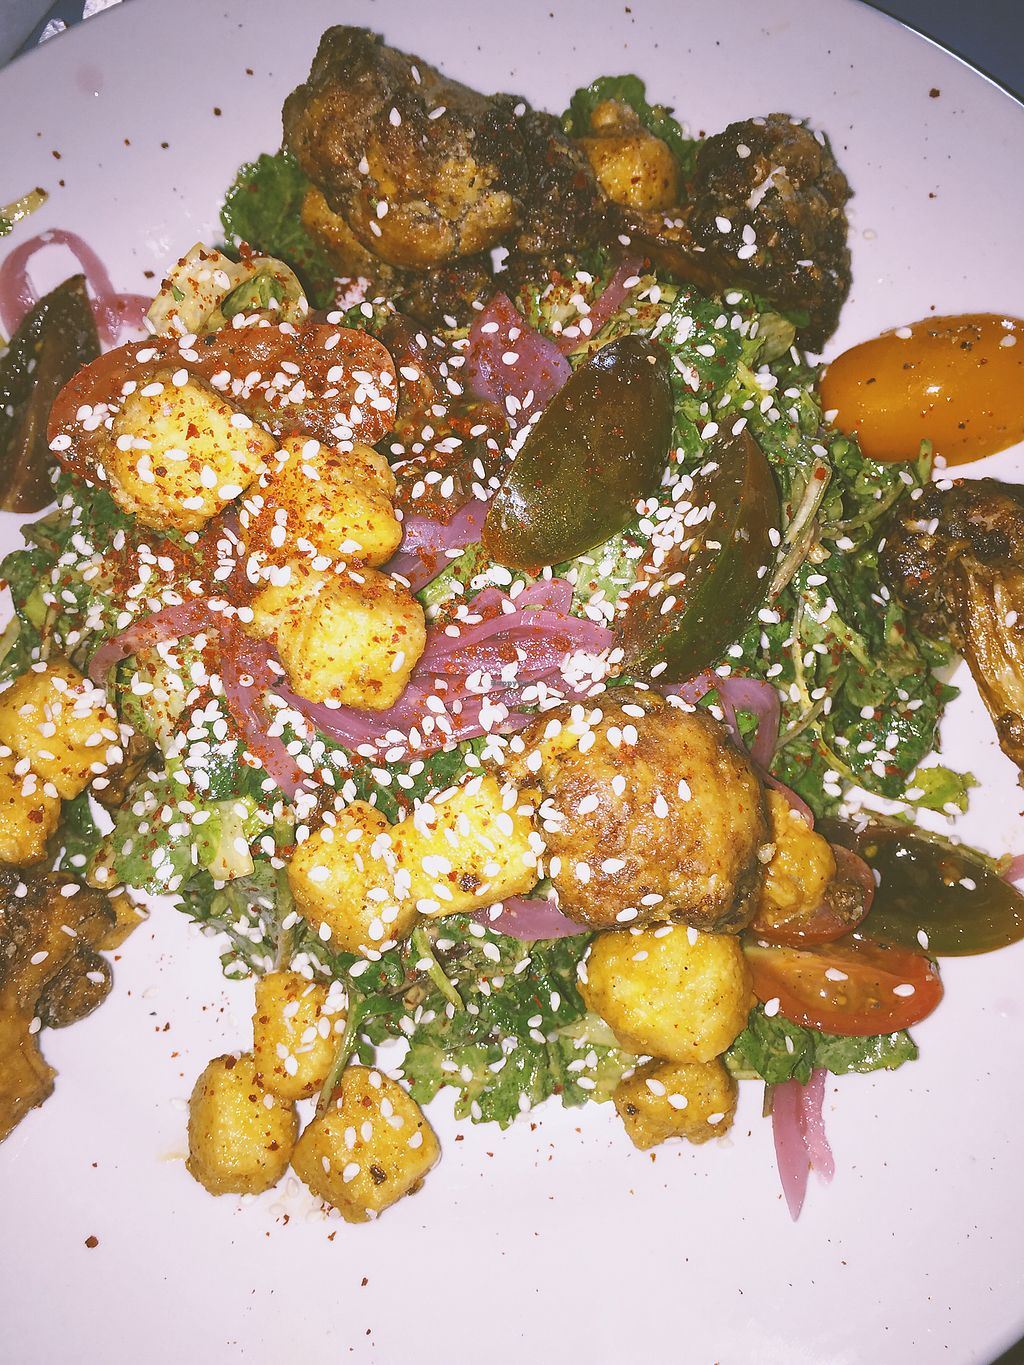 """Photo of Sneaky Pickle  by <a href=""""/members/profile/terrywashere"""">terrywashere</a> <br/>buffalo fried tofu salad.  <br/> March 2, 2018  - <a href='/contact/abuse/image/45345/365917'>Report</a>"""